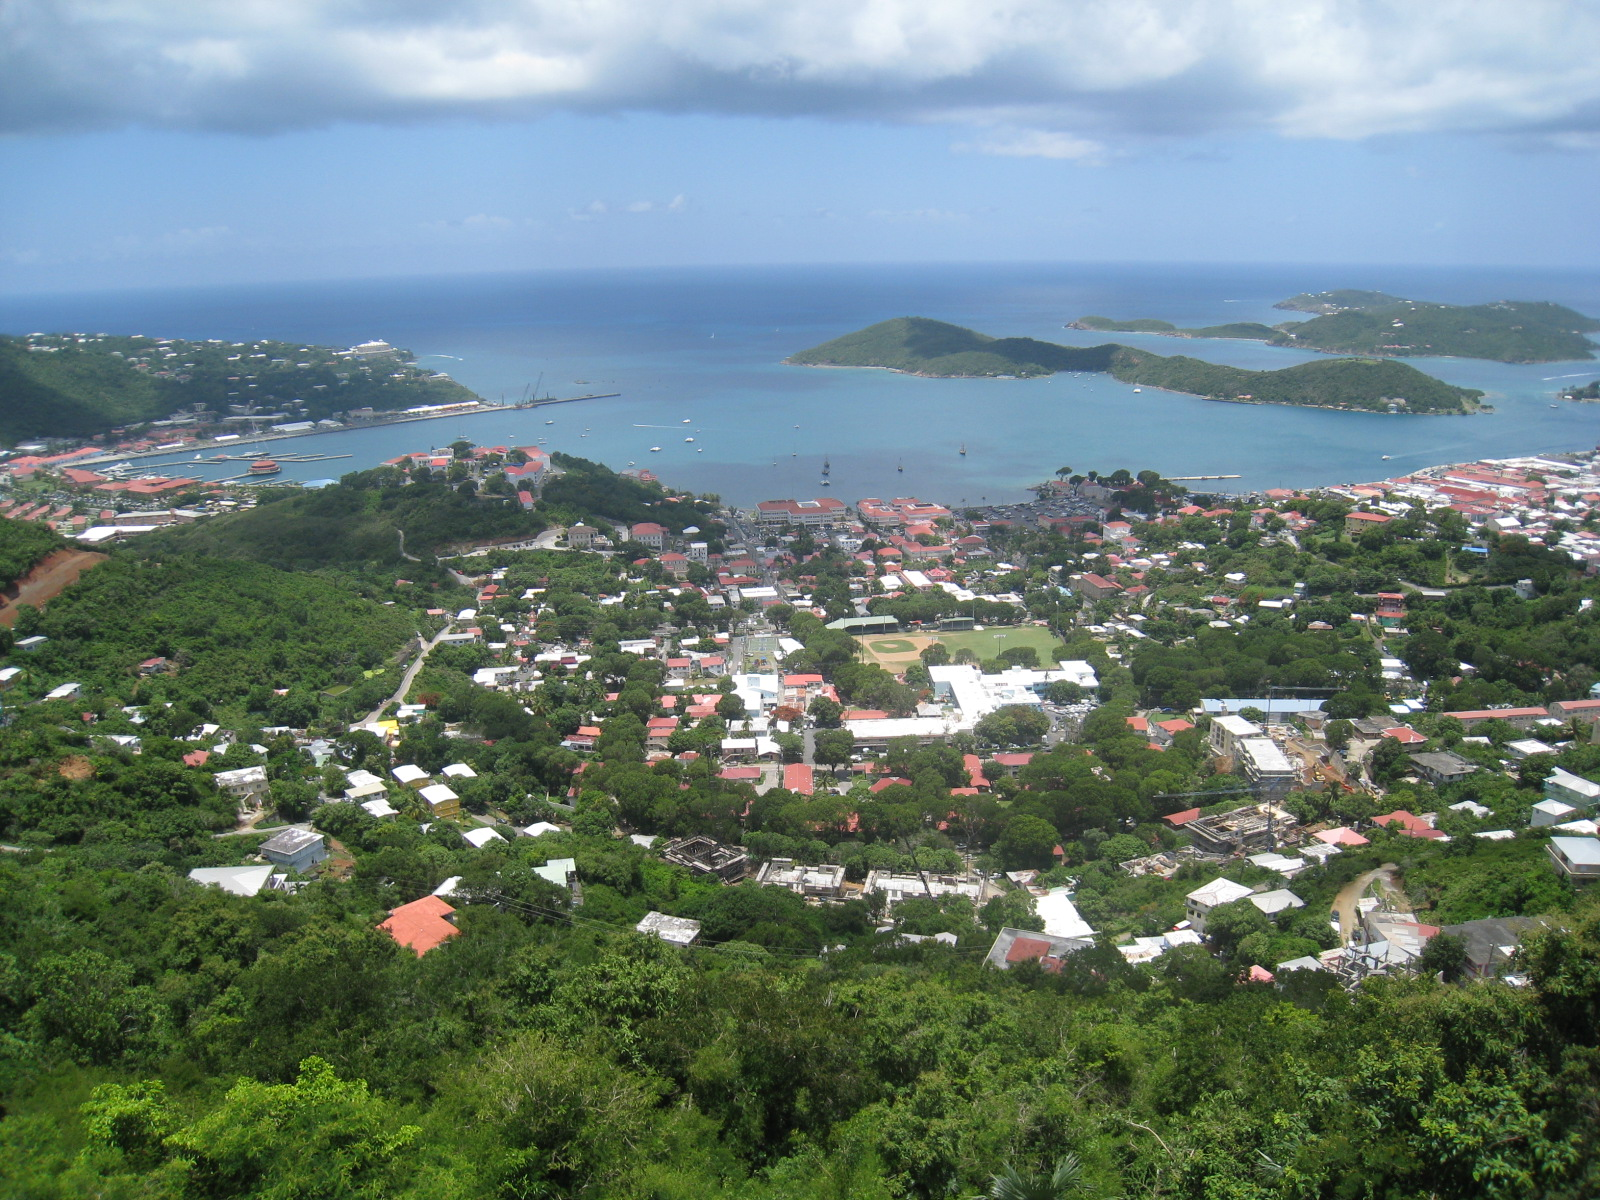 View of the US Virgin Islands